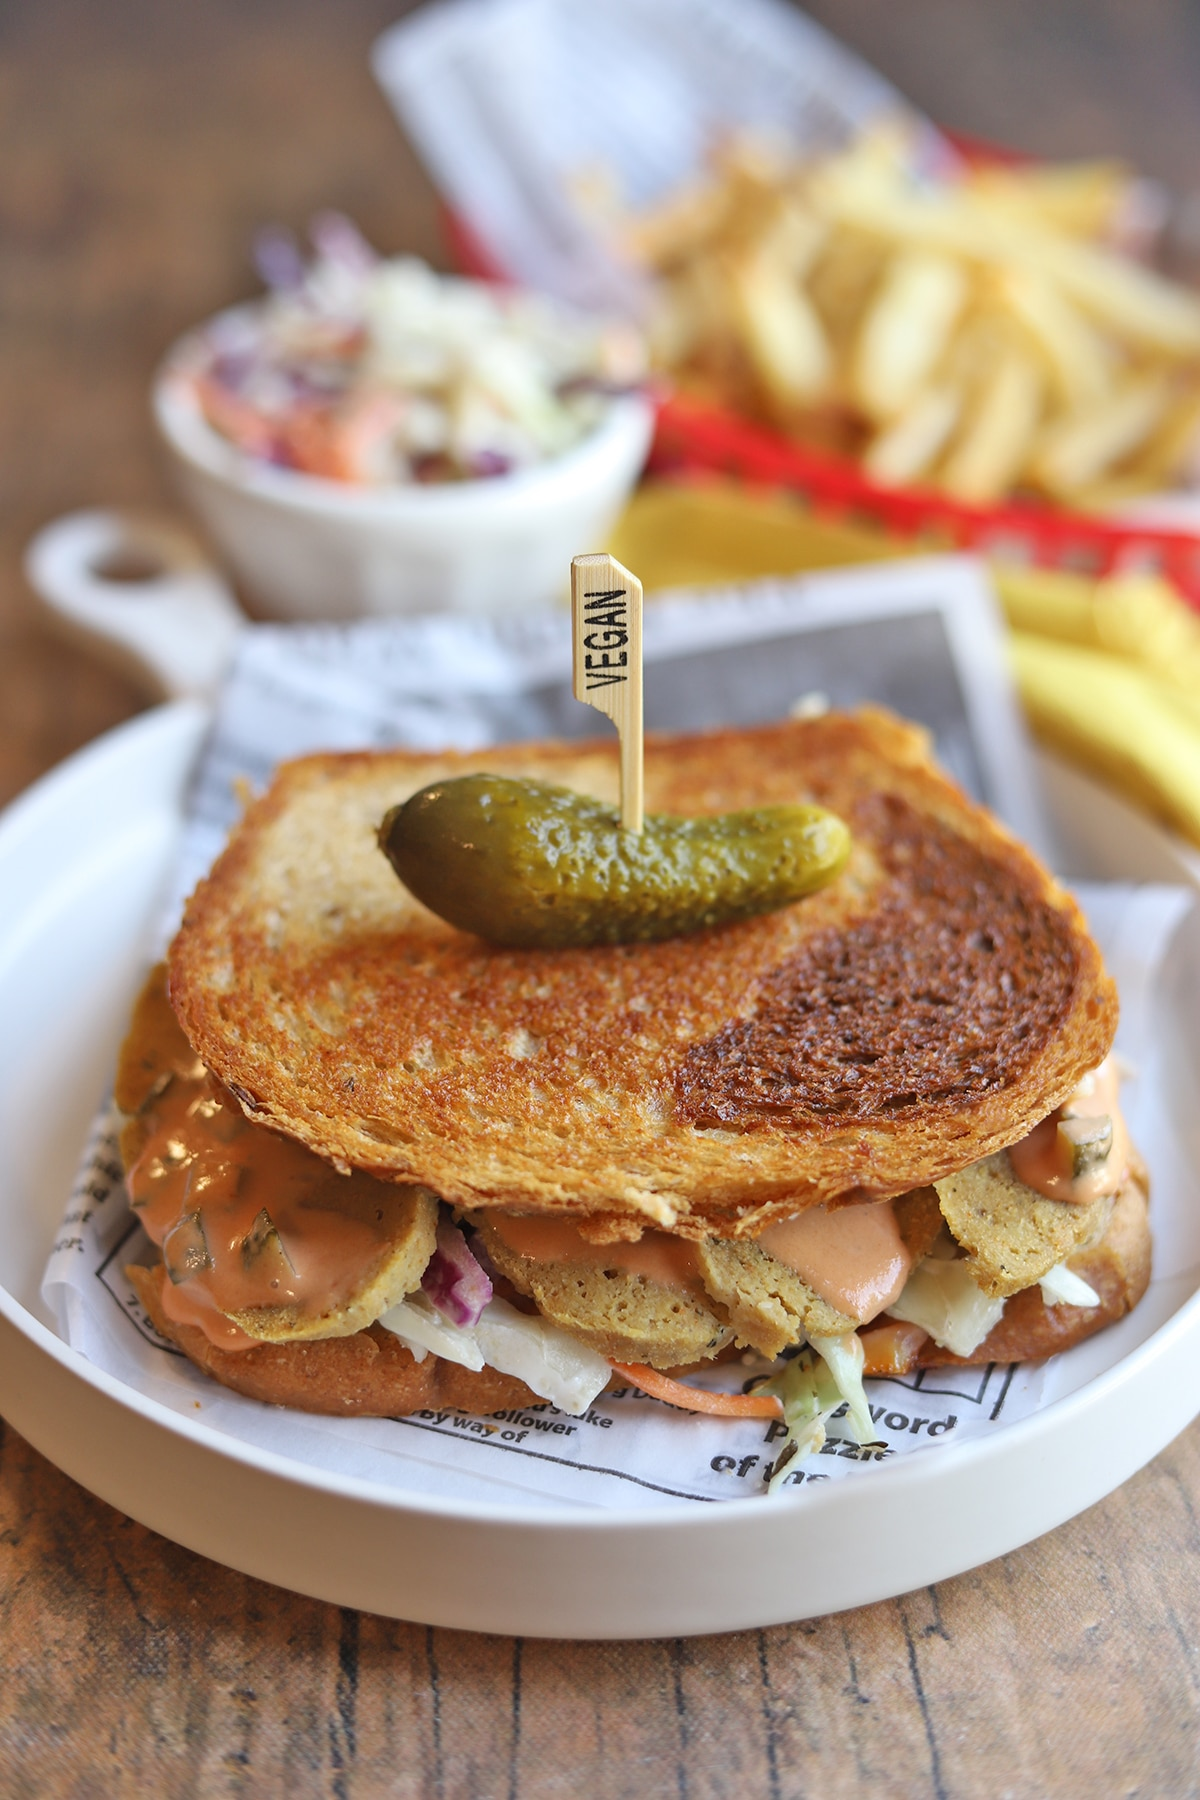 Toasted Rachel sandwich with seitan chicken on plate and topped with a pickle.